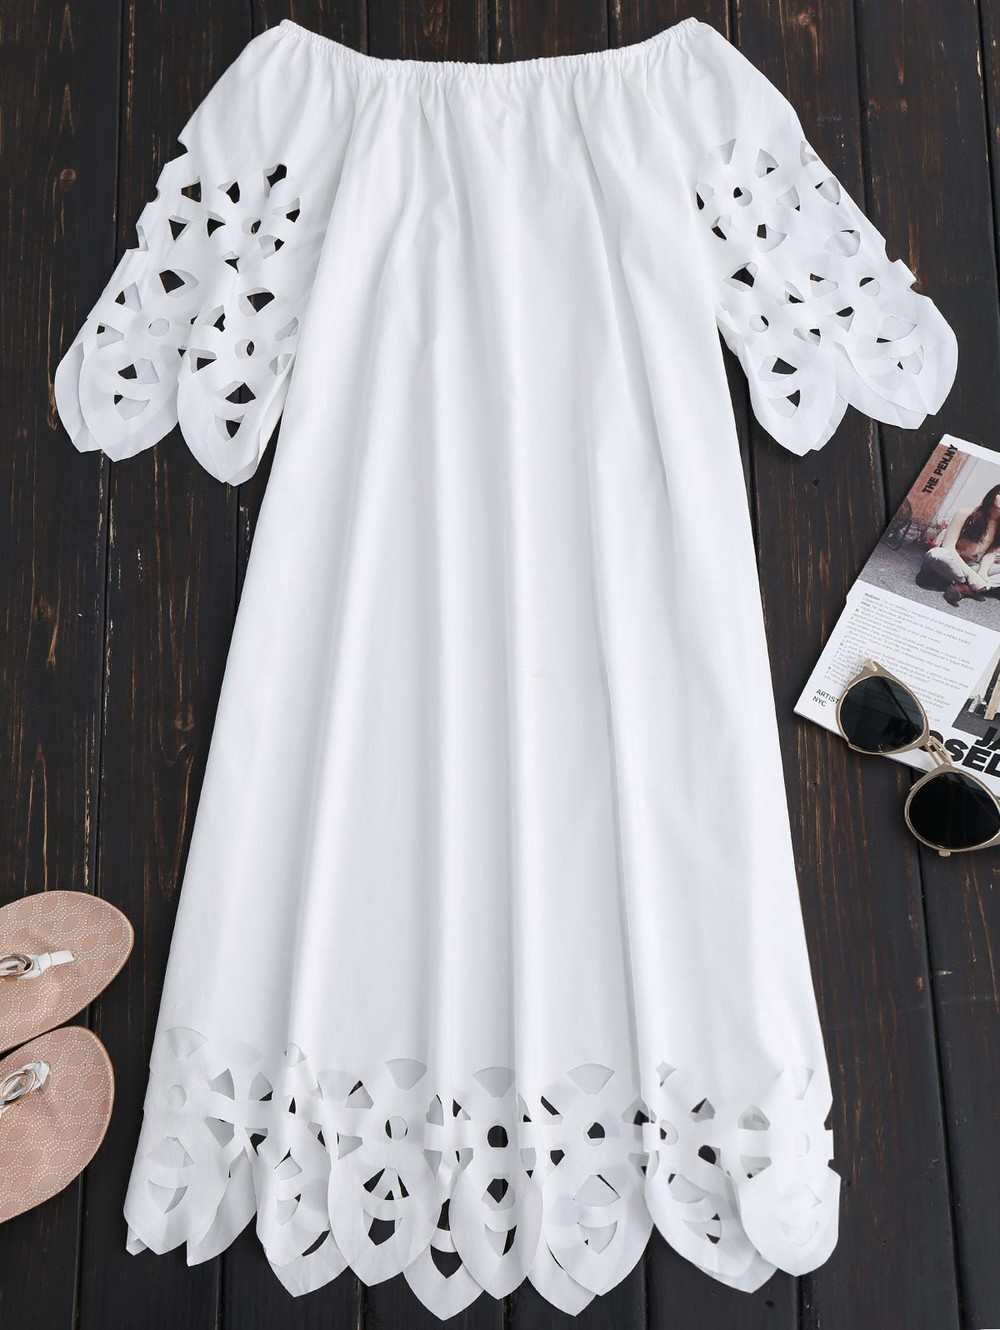 Zaful Off The Shoulder Flared Dress in white